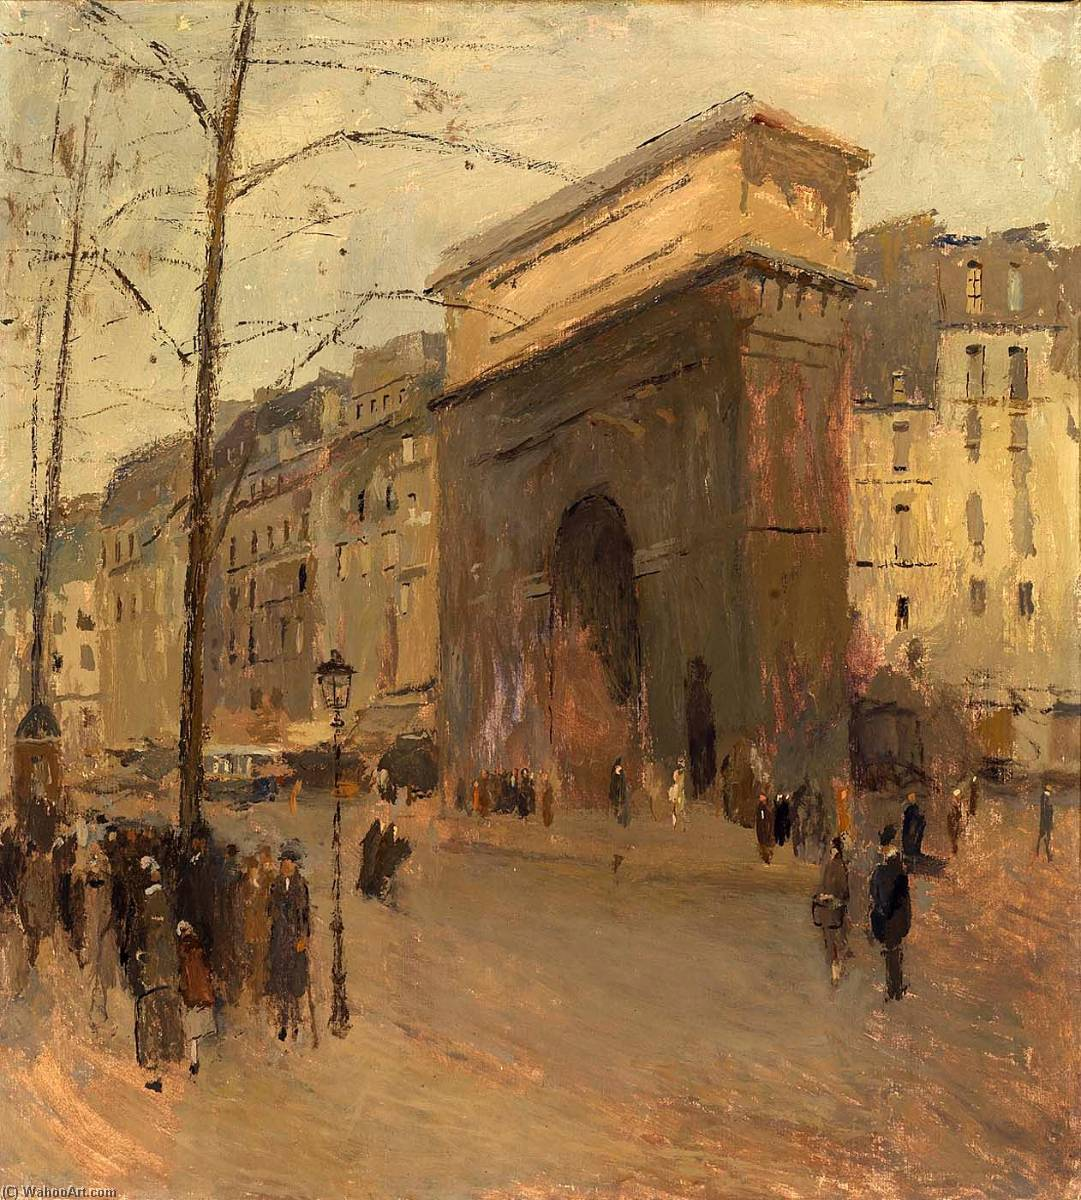 Pedir Reproducciones De Bellas Artes | Puerta San . Denis de Frank Edwin Scott | Most-Famous-Paintings.com